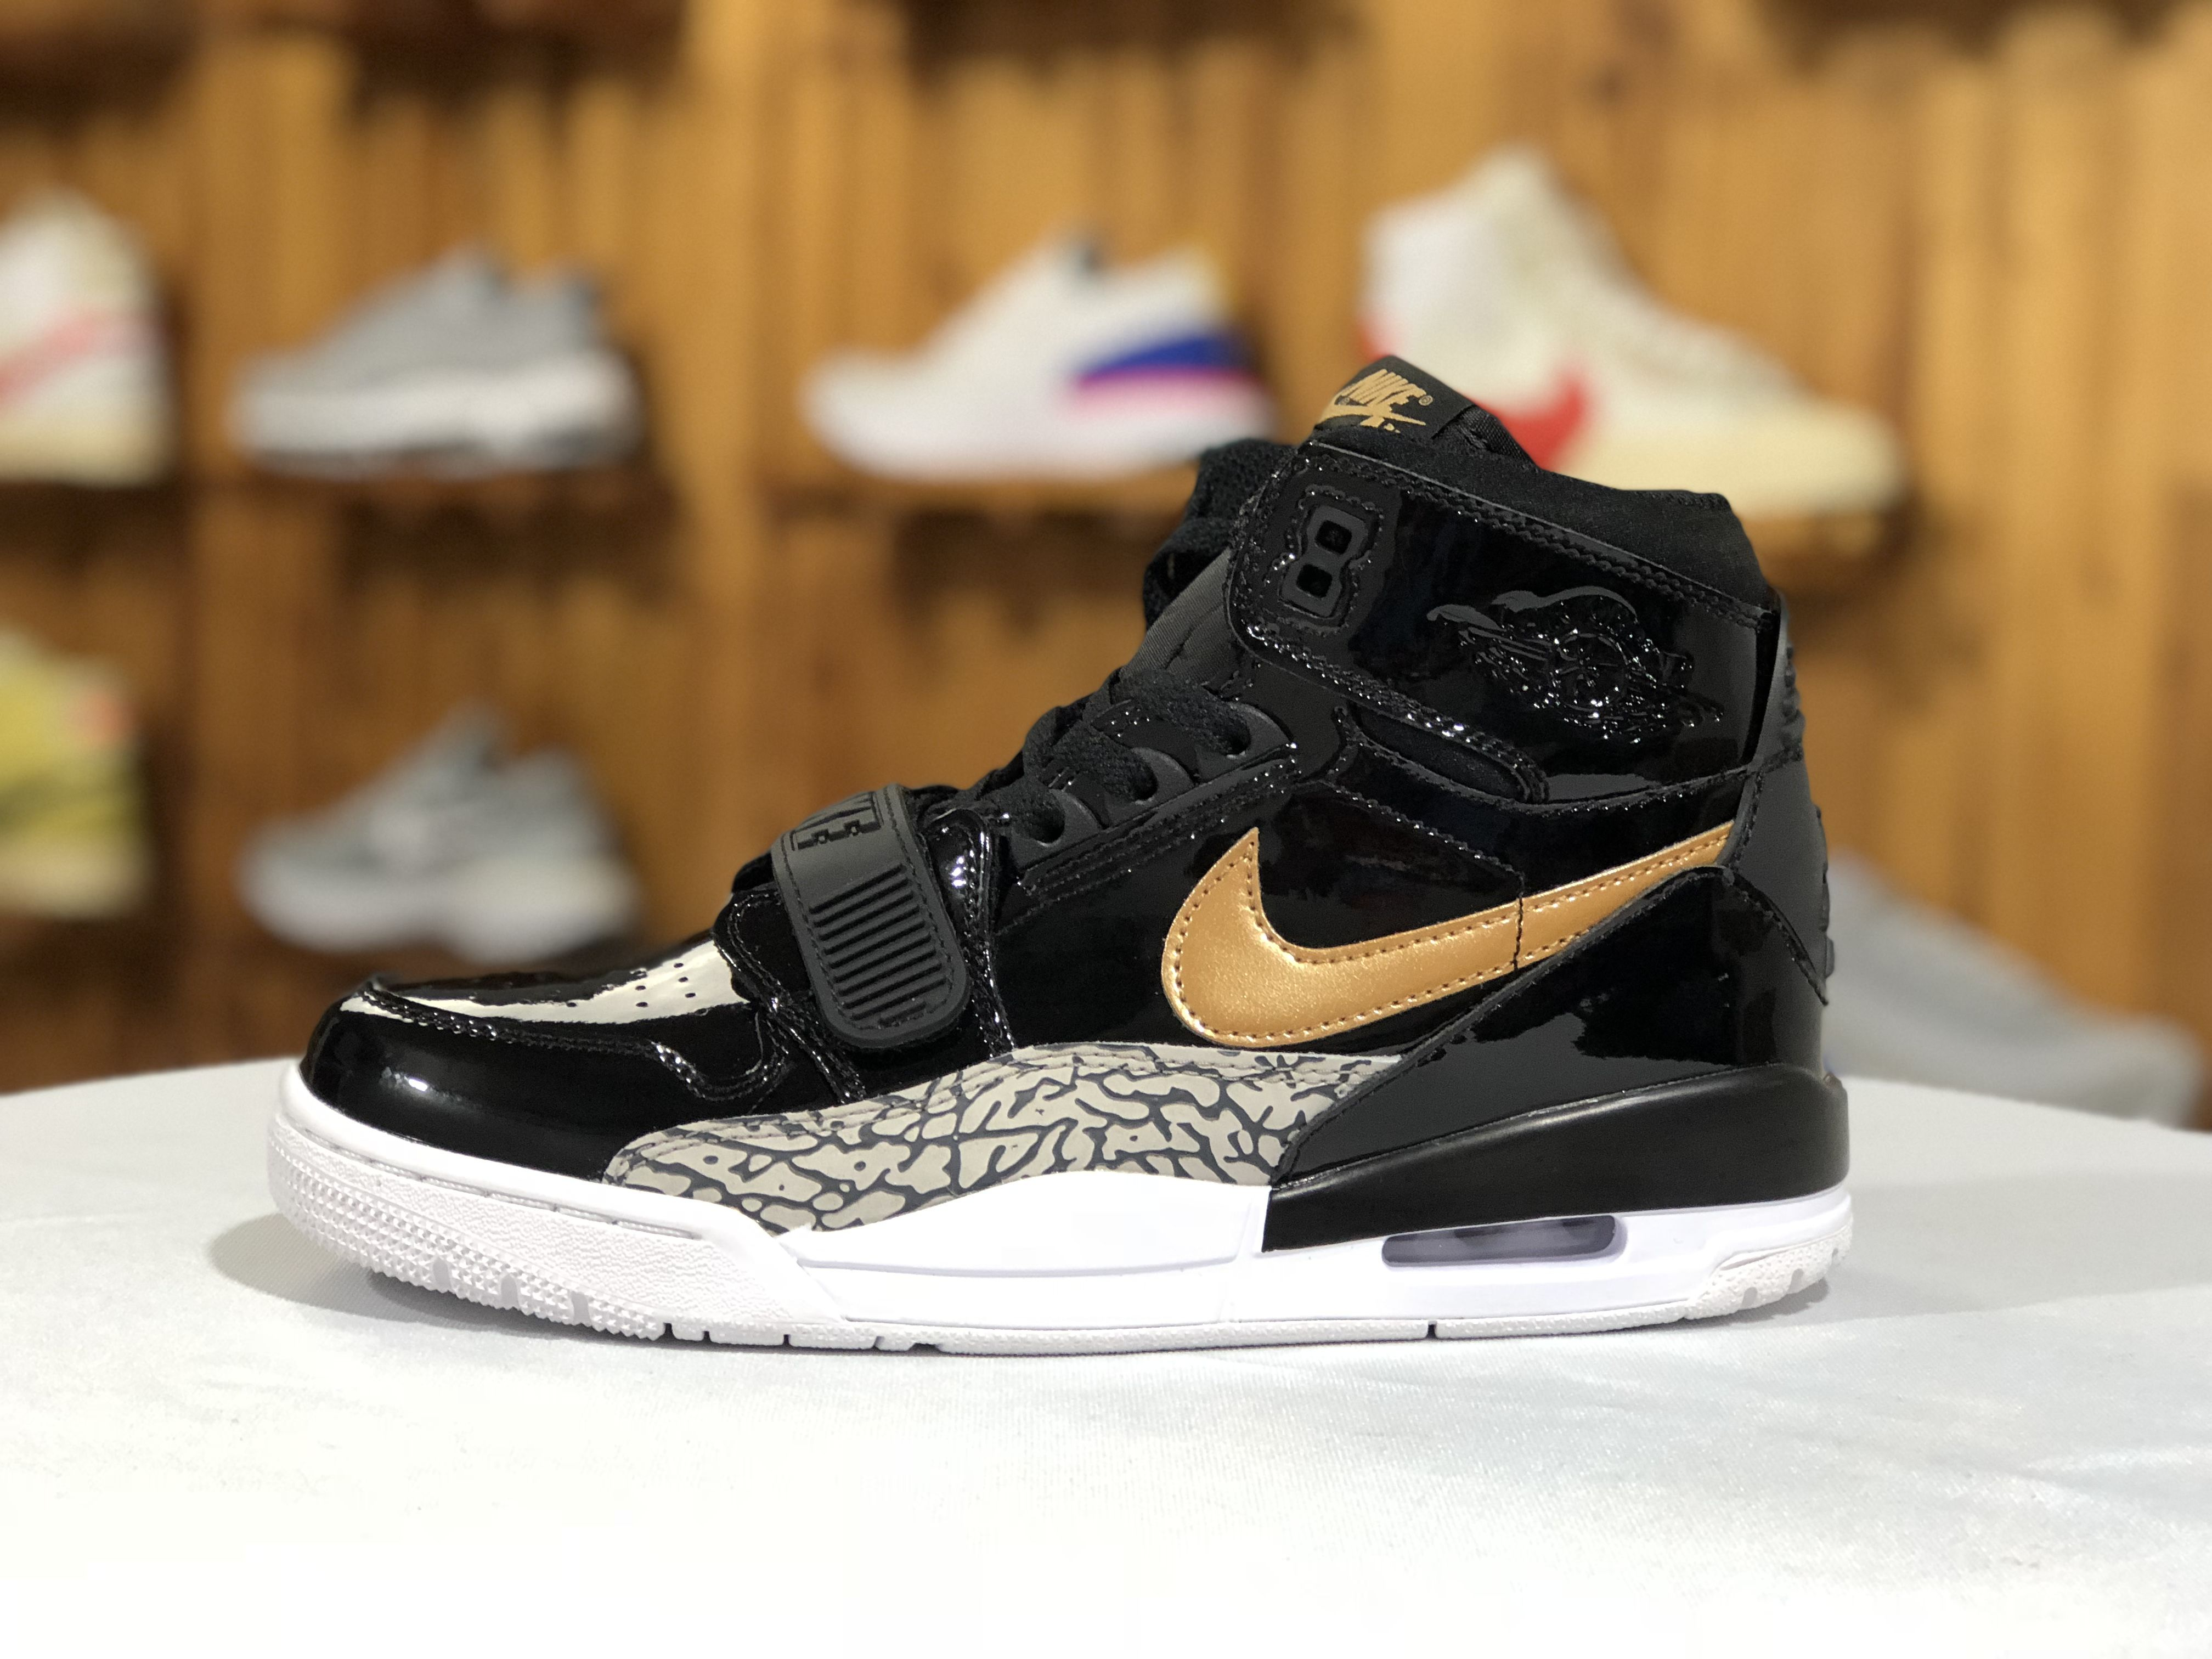 d28bbd0fc55c Jordan Legacy 312 Black Gold Patent Leather Basketball Shoes ...